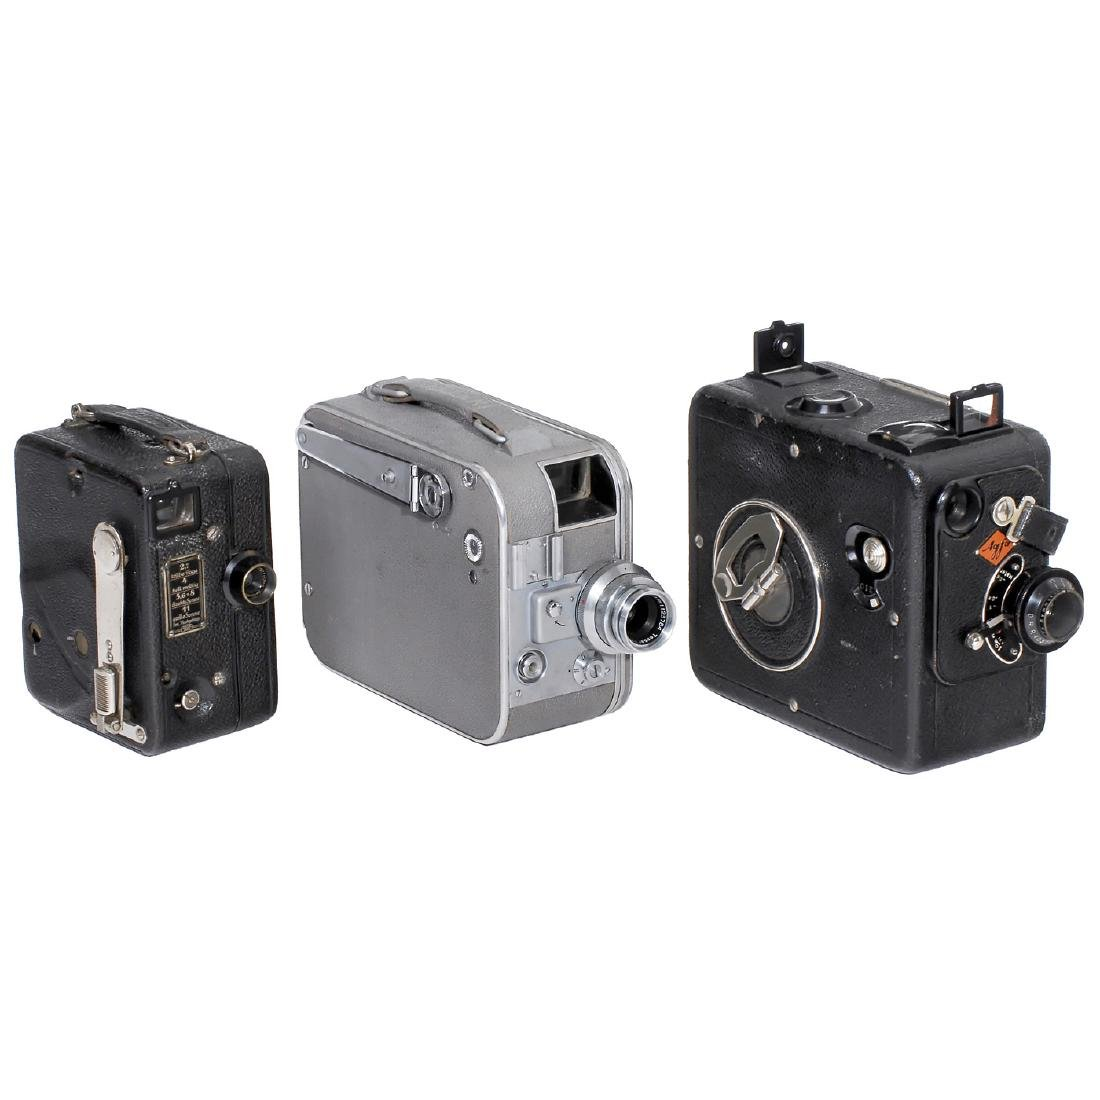 3 Movie Cameras for 16mm Film